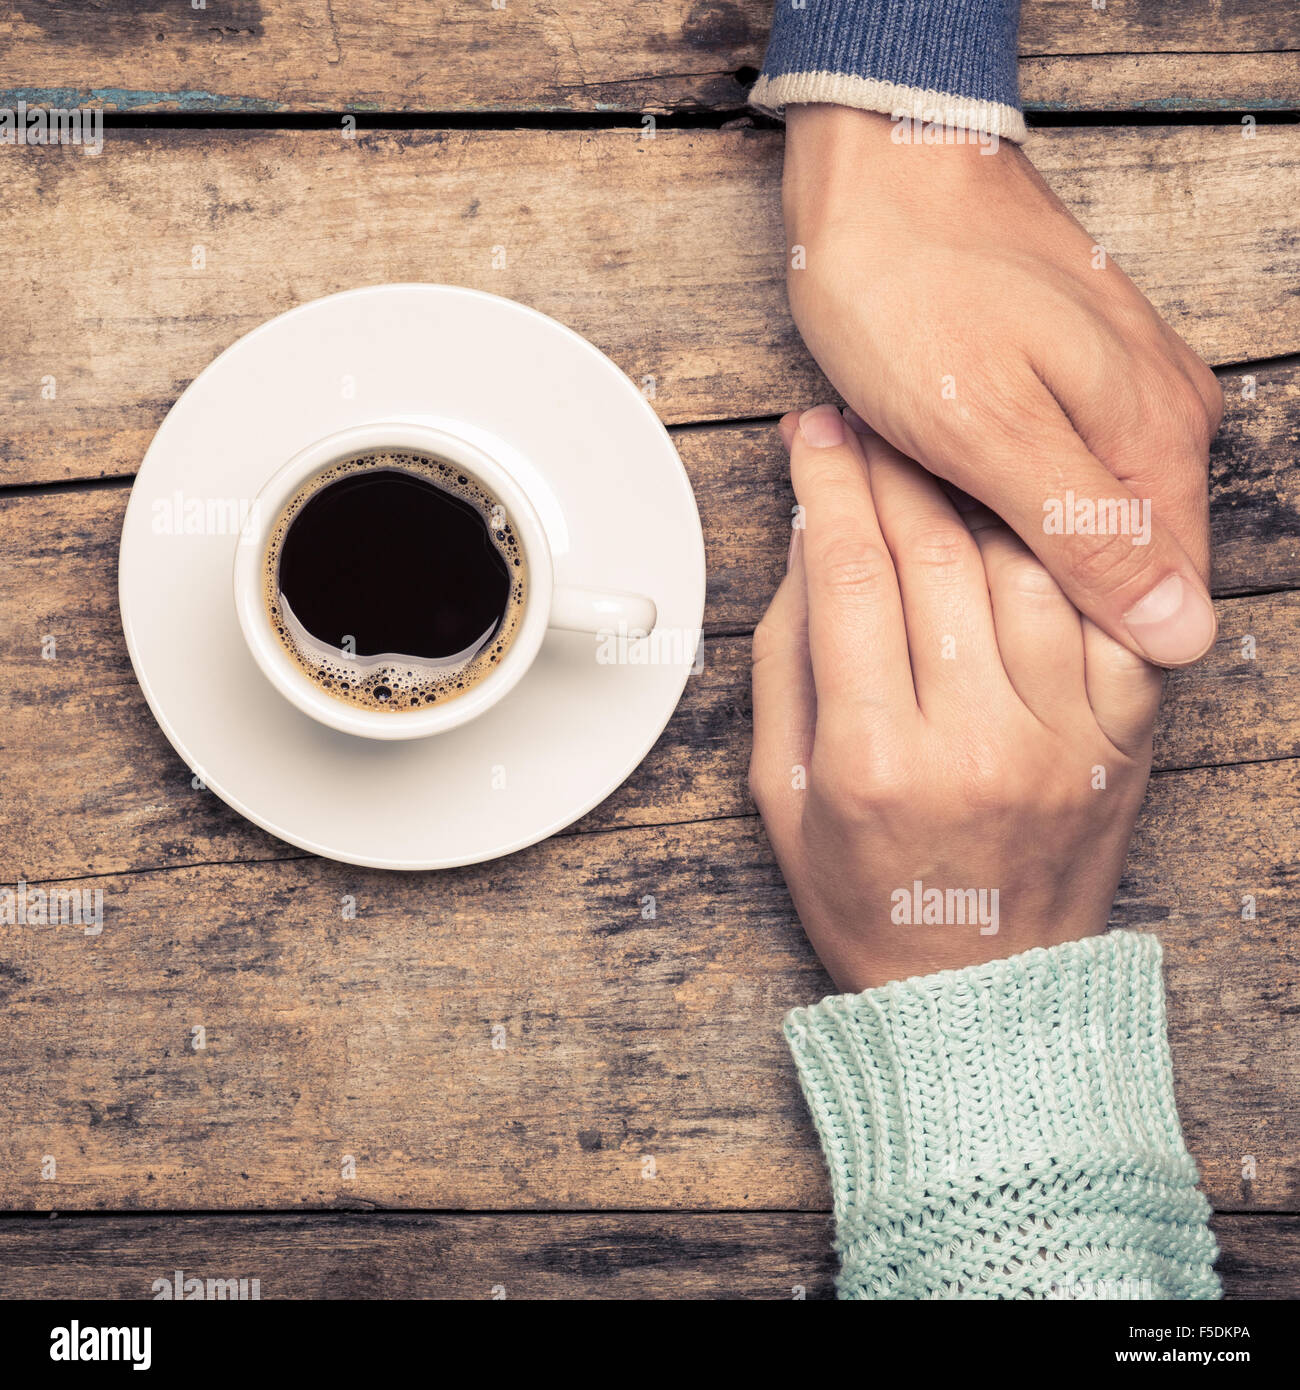 Close up image of people relations background. Man holding woman's hand near cup of coffee. Warm color toned - Stock Image